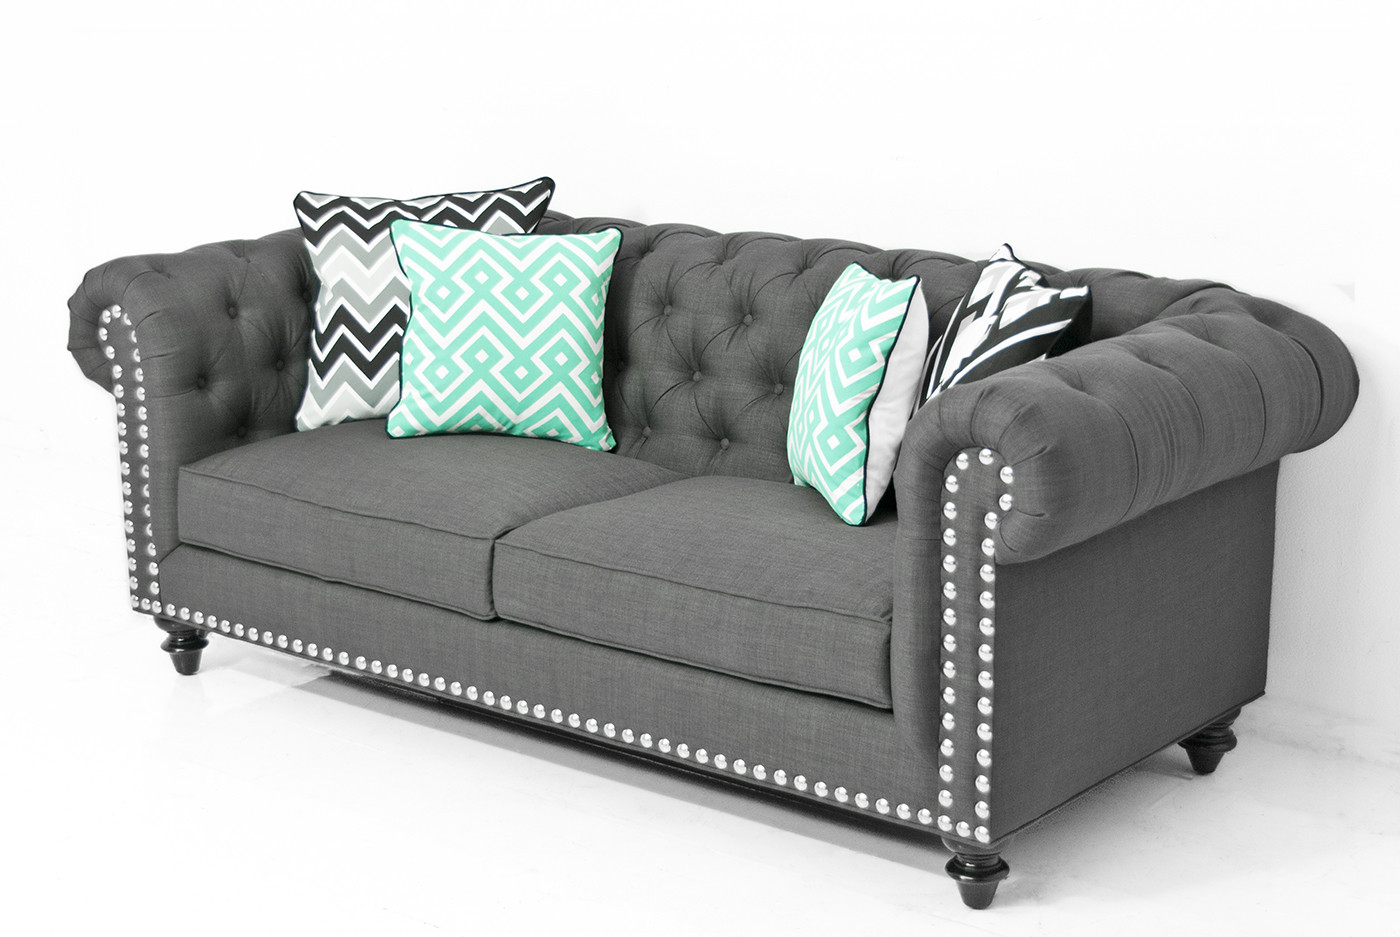 Awesome Chesterfield Sofa in Charcoal Linen linen chesterfield sofa